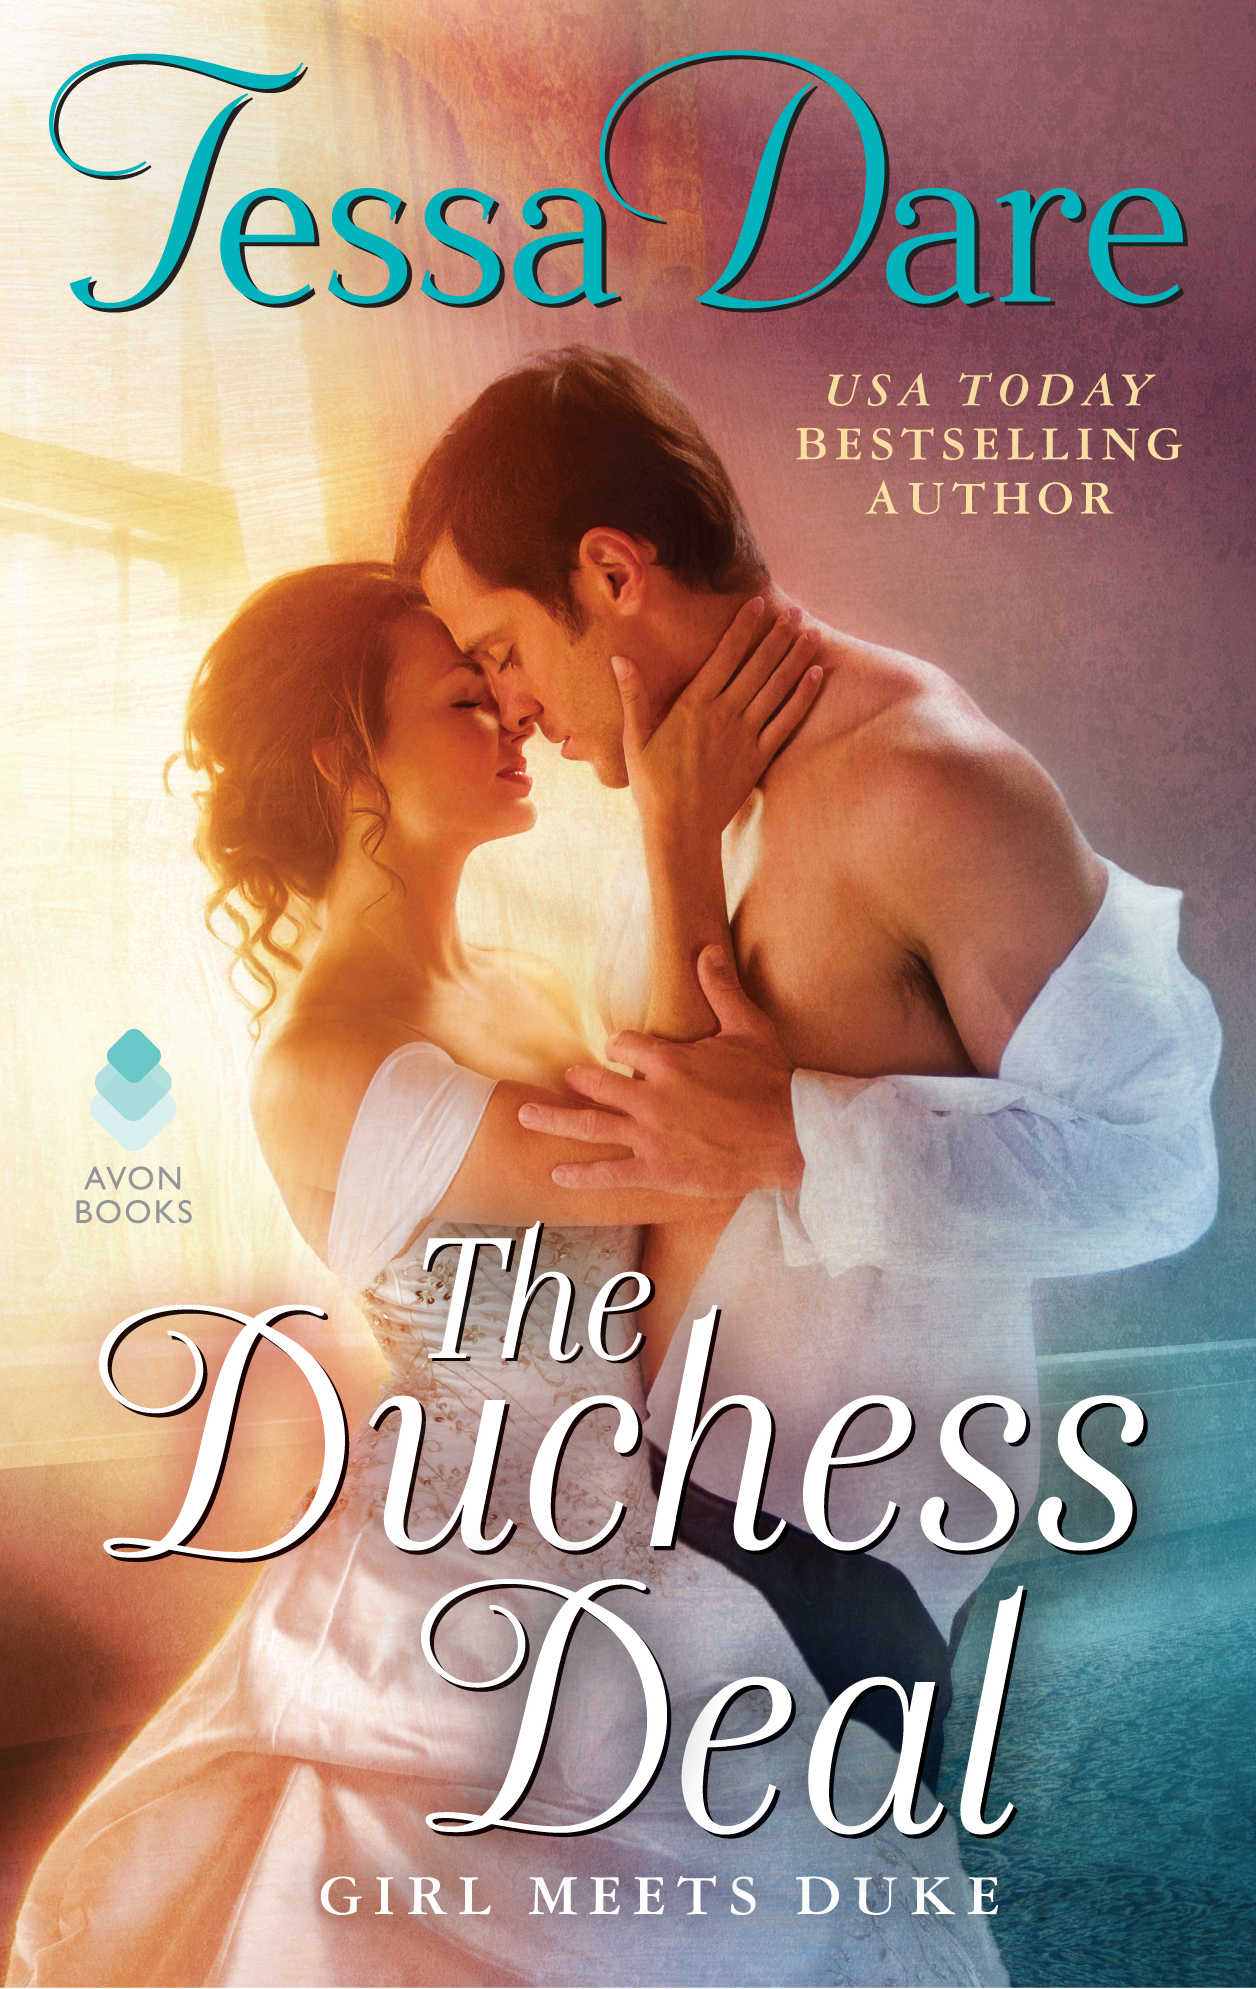 Romance Book Cover Up : New romance novels that will definitely heat up your